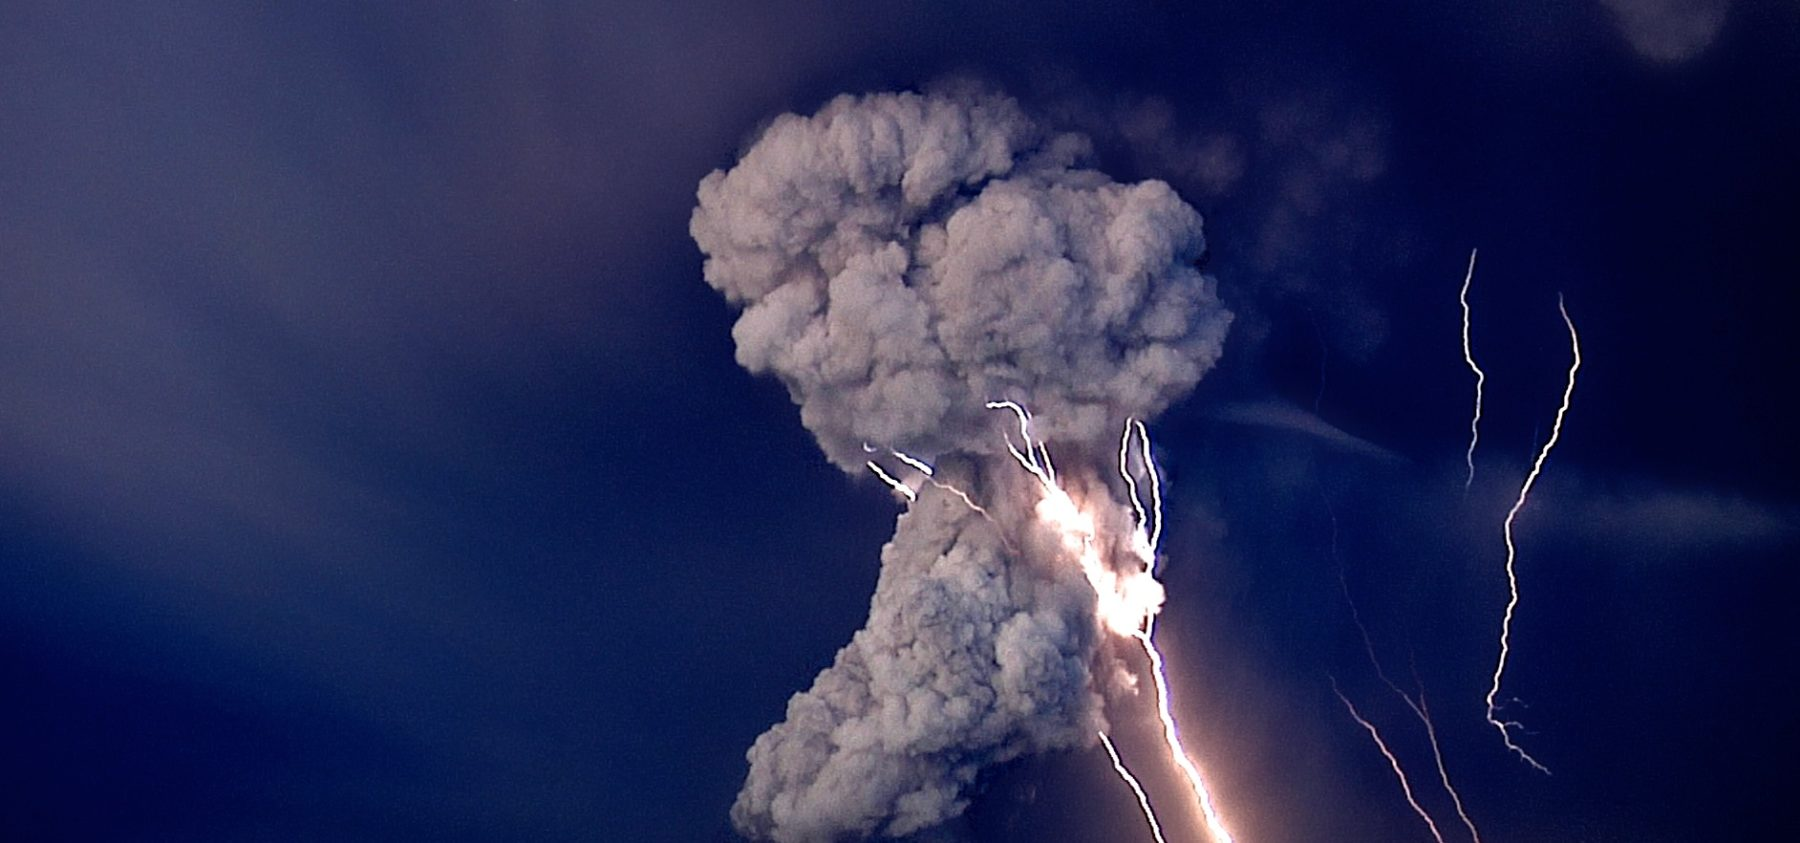 volcanic eruptions in iceland In 2014, researchers captured stunning footage of iceland's biggest volcanic  eruption in 200 years the bárðarbunga eruption spewed a.